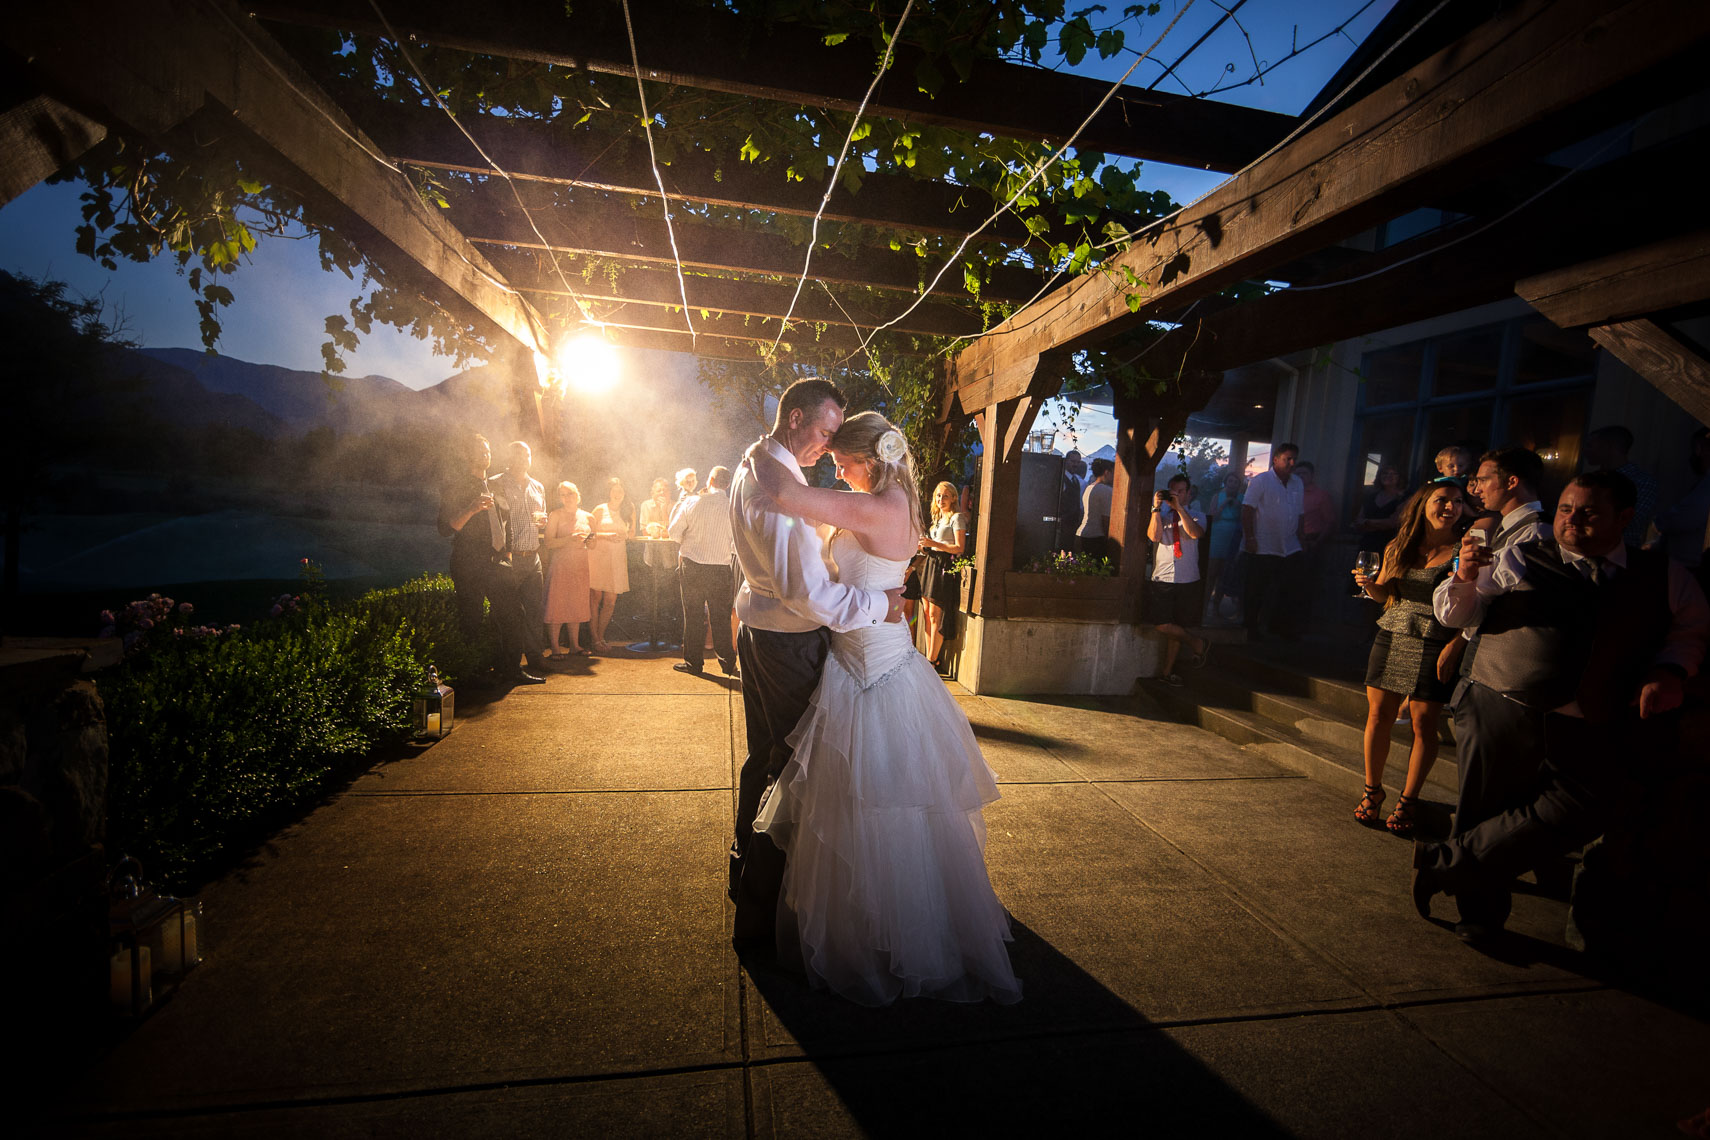 Bride and groom share first dance at the Big Sky golf wedding venue in Pemberton BC